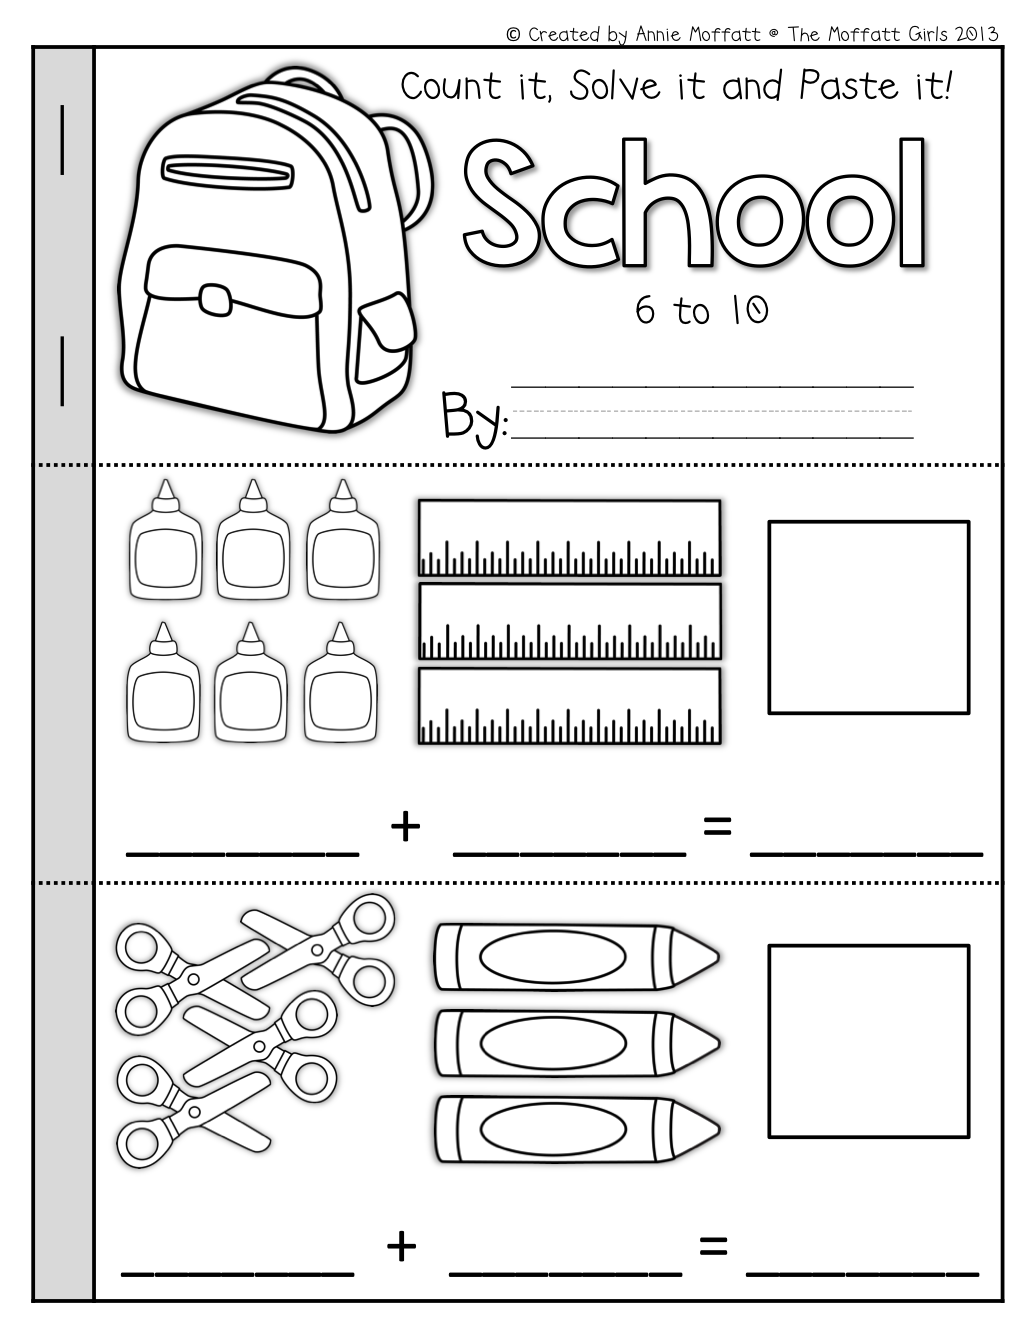 Little Math Booklets That Help With Simple Addition And